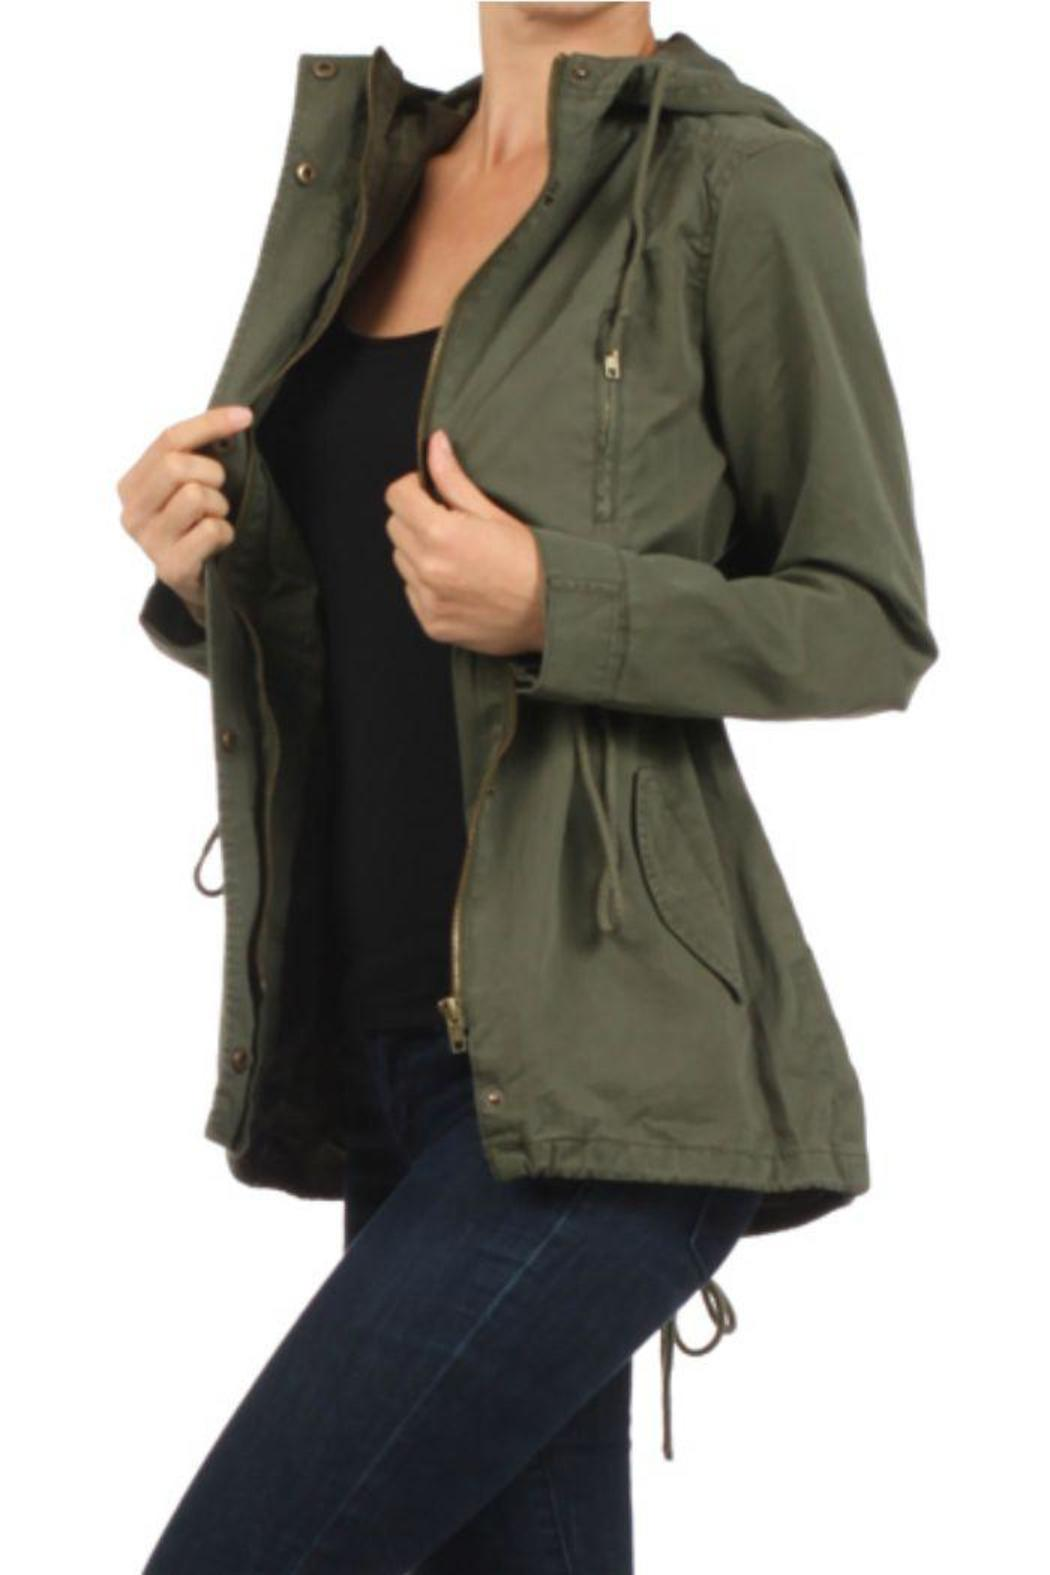 Ambiance Olive Military Jacket From Huntington Beach By